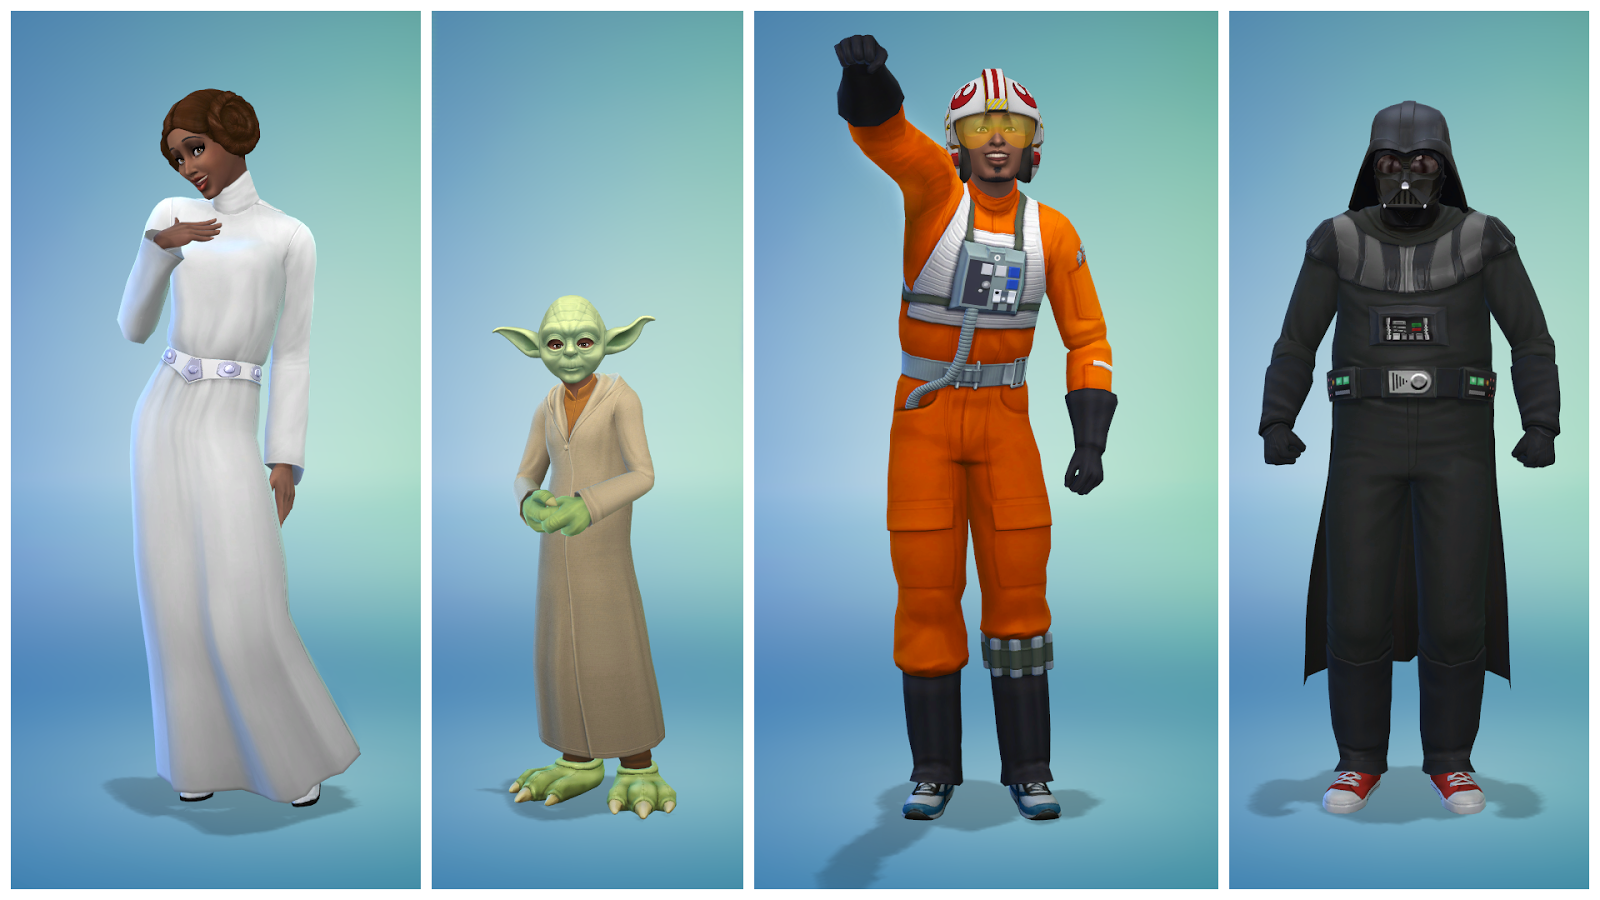 The Sims 4 Gets Free Content Update That Adds Ghosts, Special Star